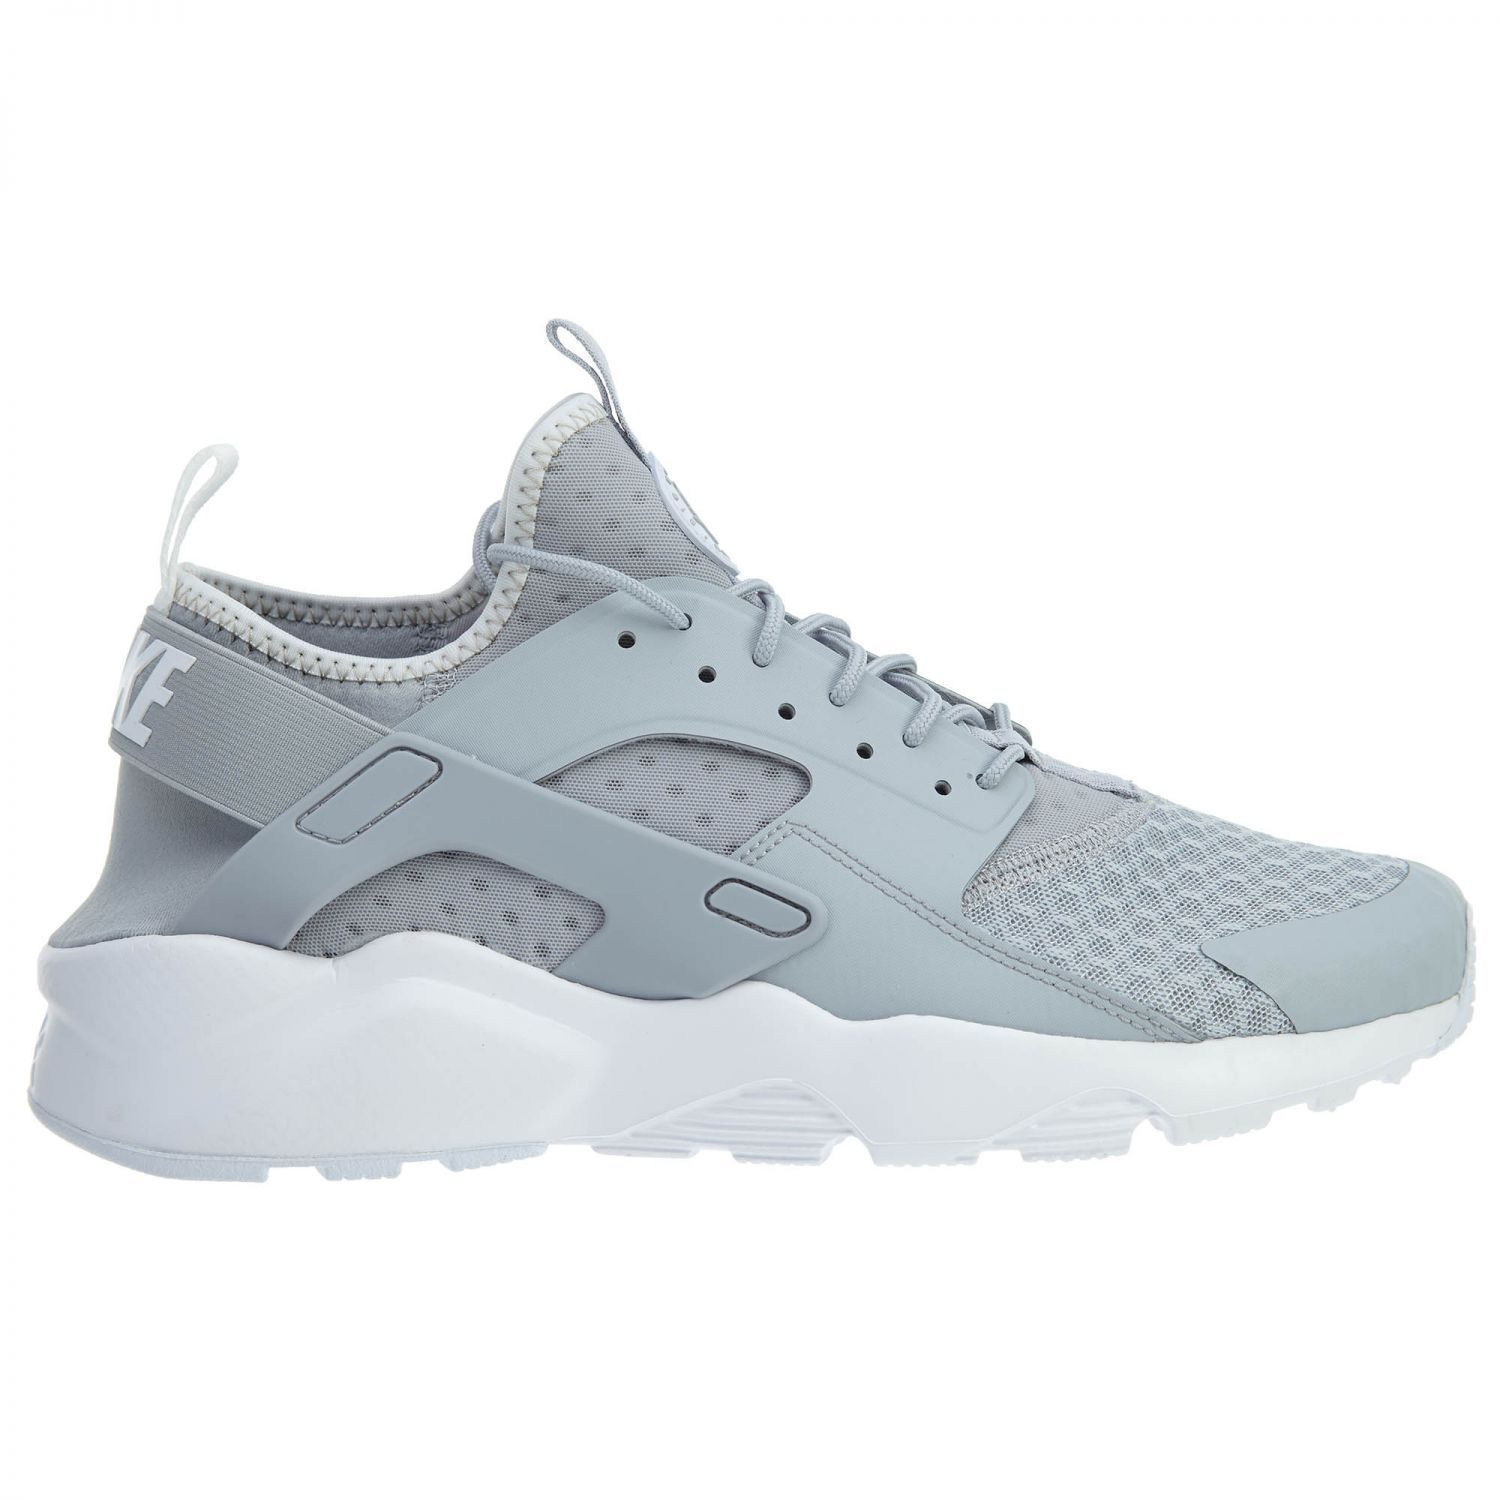 hot sale online 7e7cd 481b7 Nike Men s Air Huarache Run Ultra Shoes Size and 43 similar items. S l1600